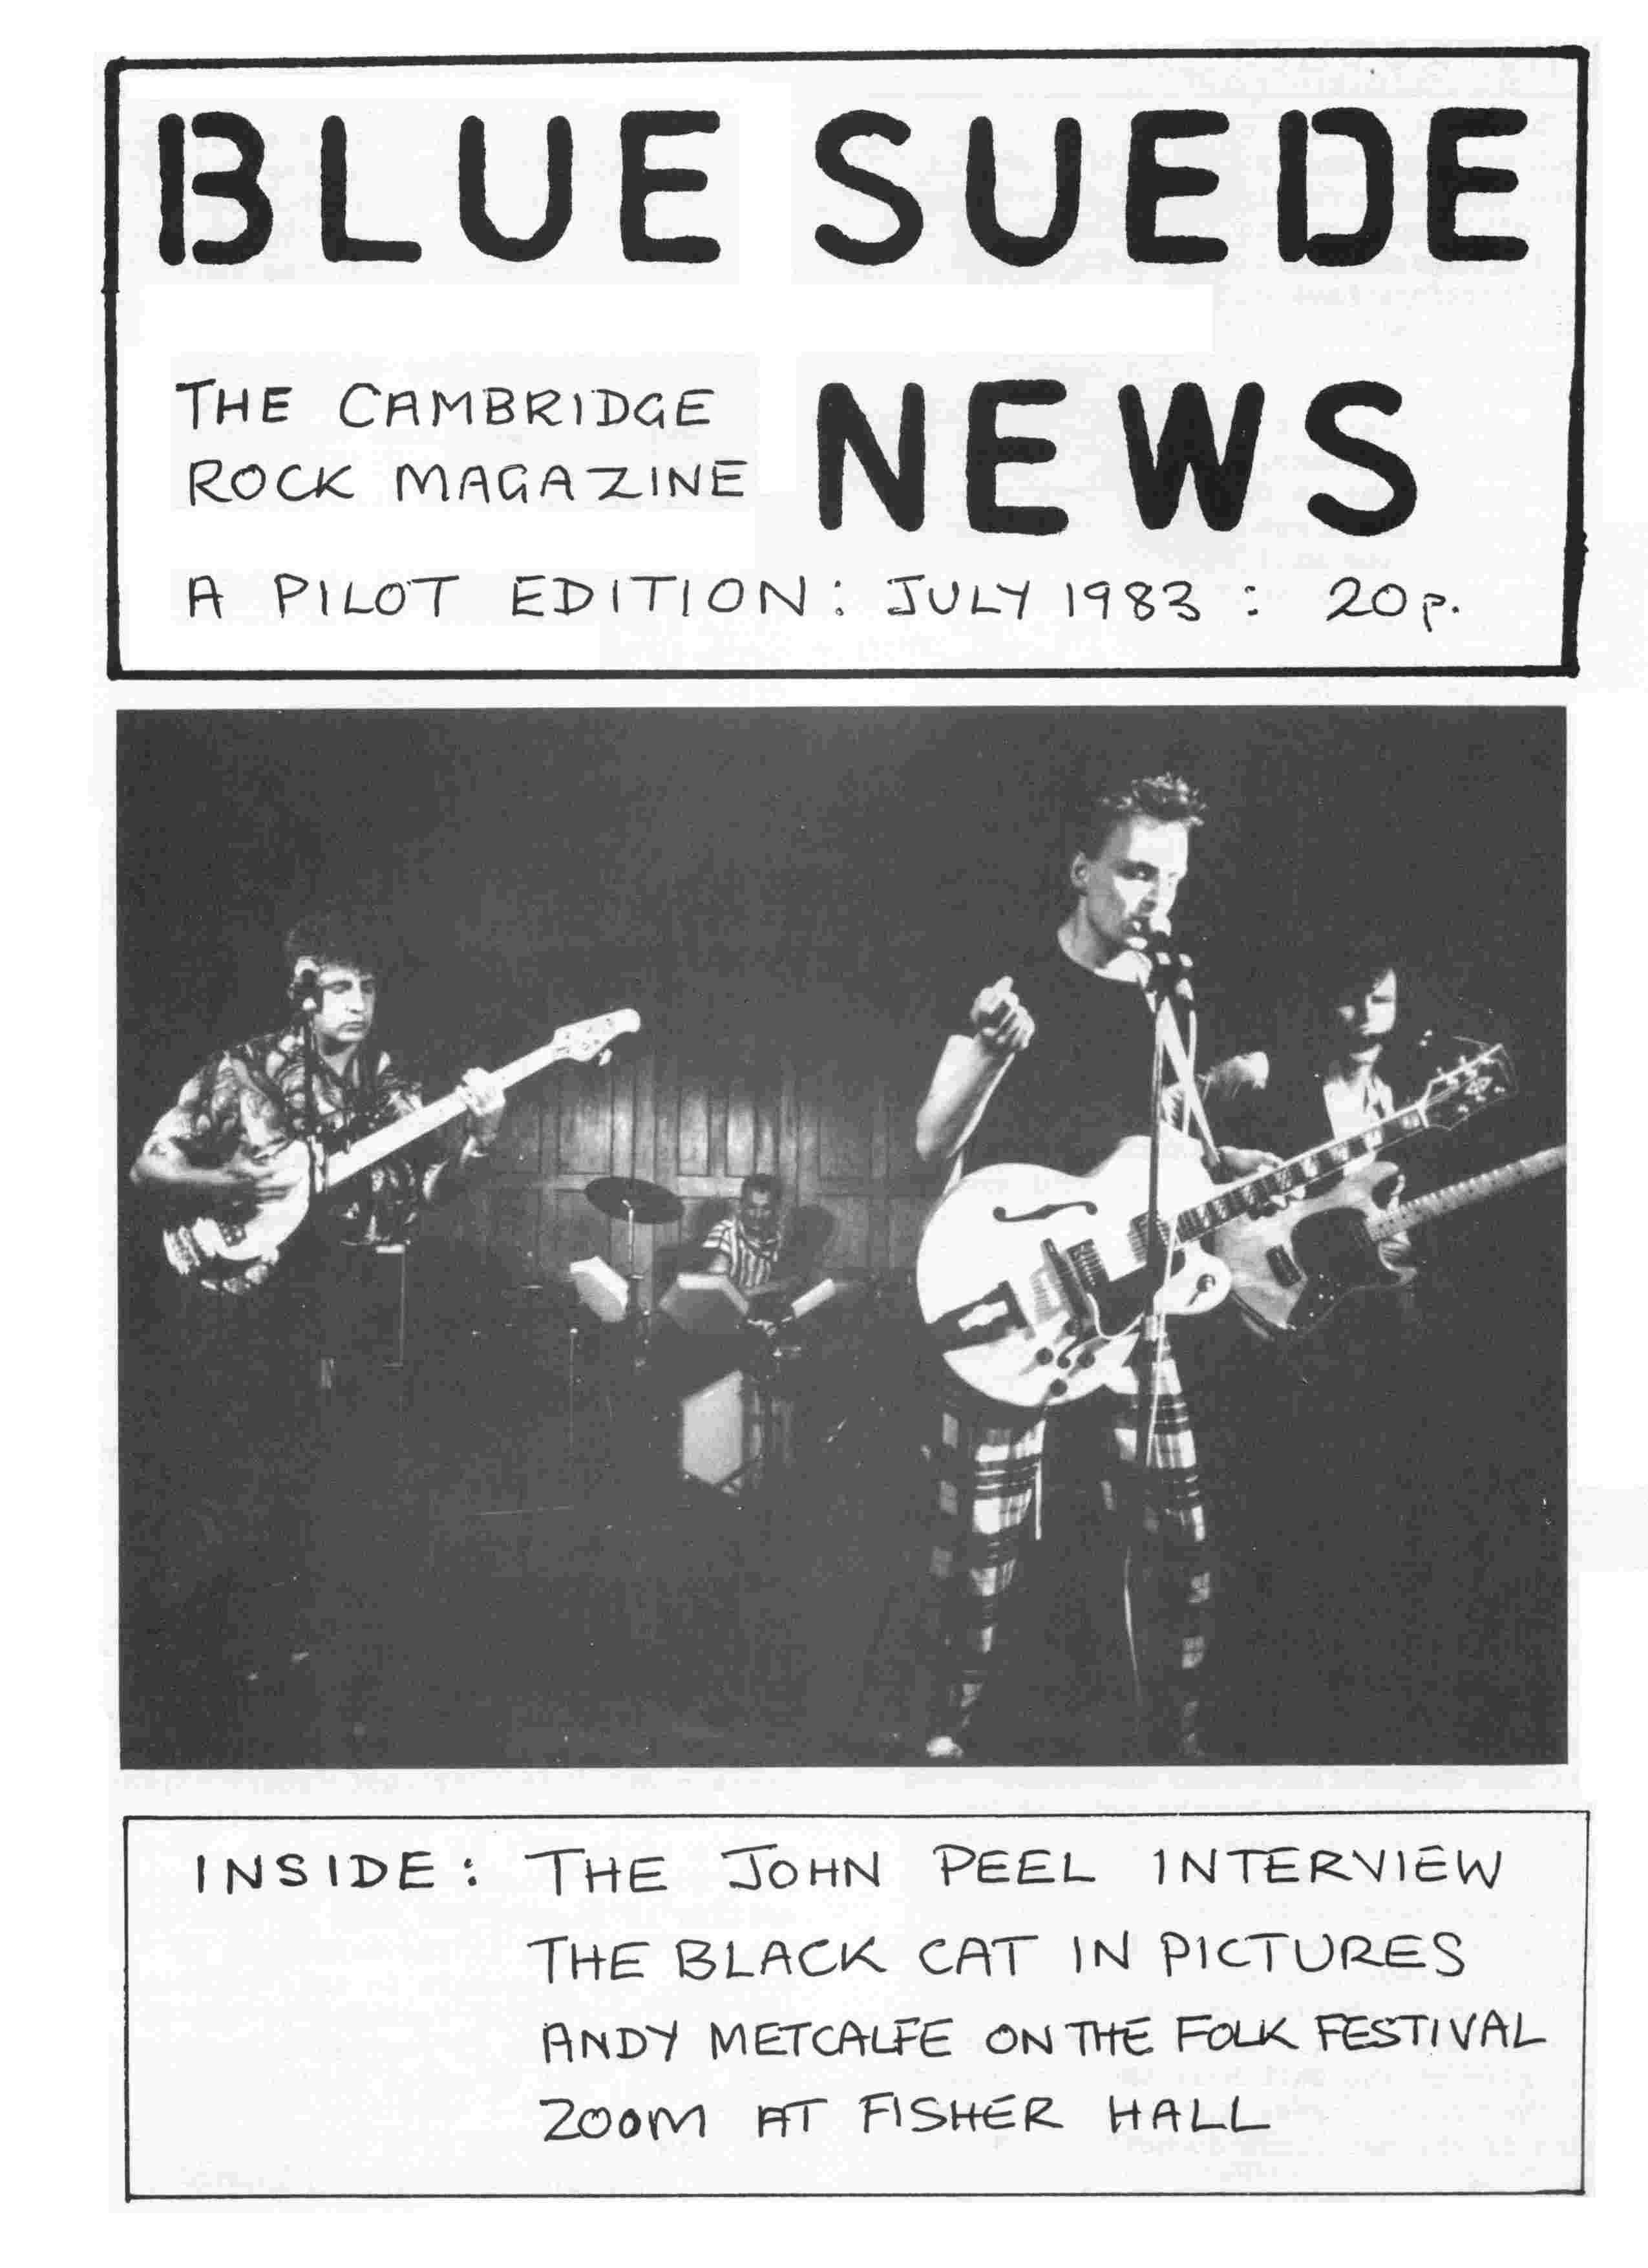 Cover of Blue Suede News pilot edition